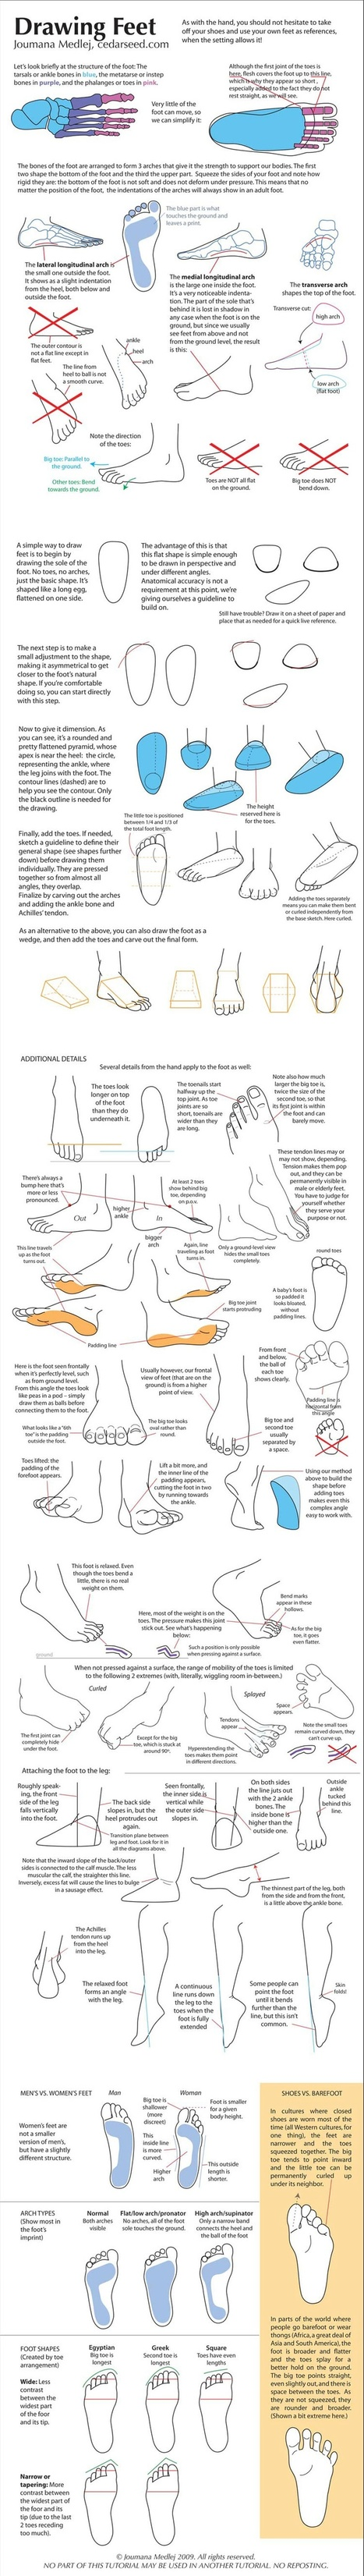 Feet Drawing Reference Guide | Circolo d'Arti | Scoop.it